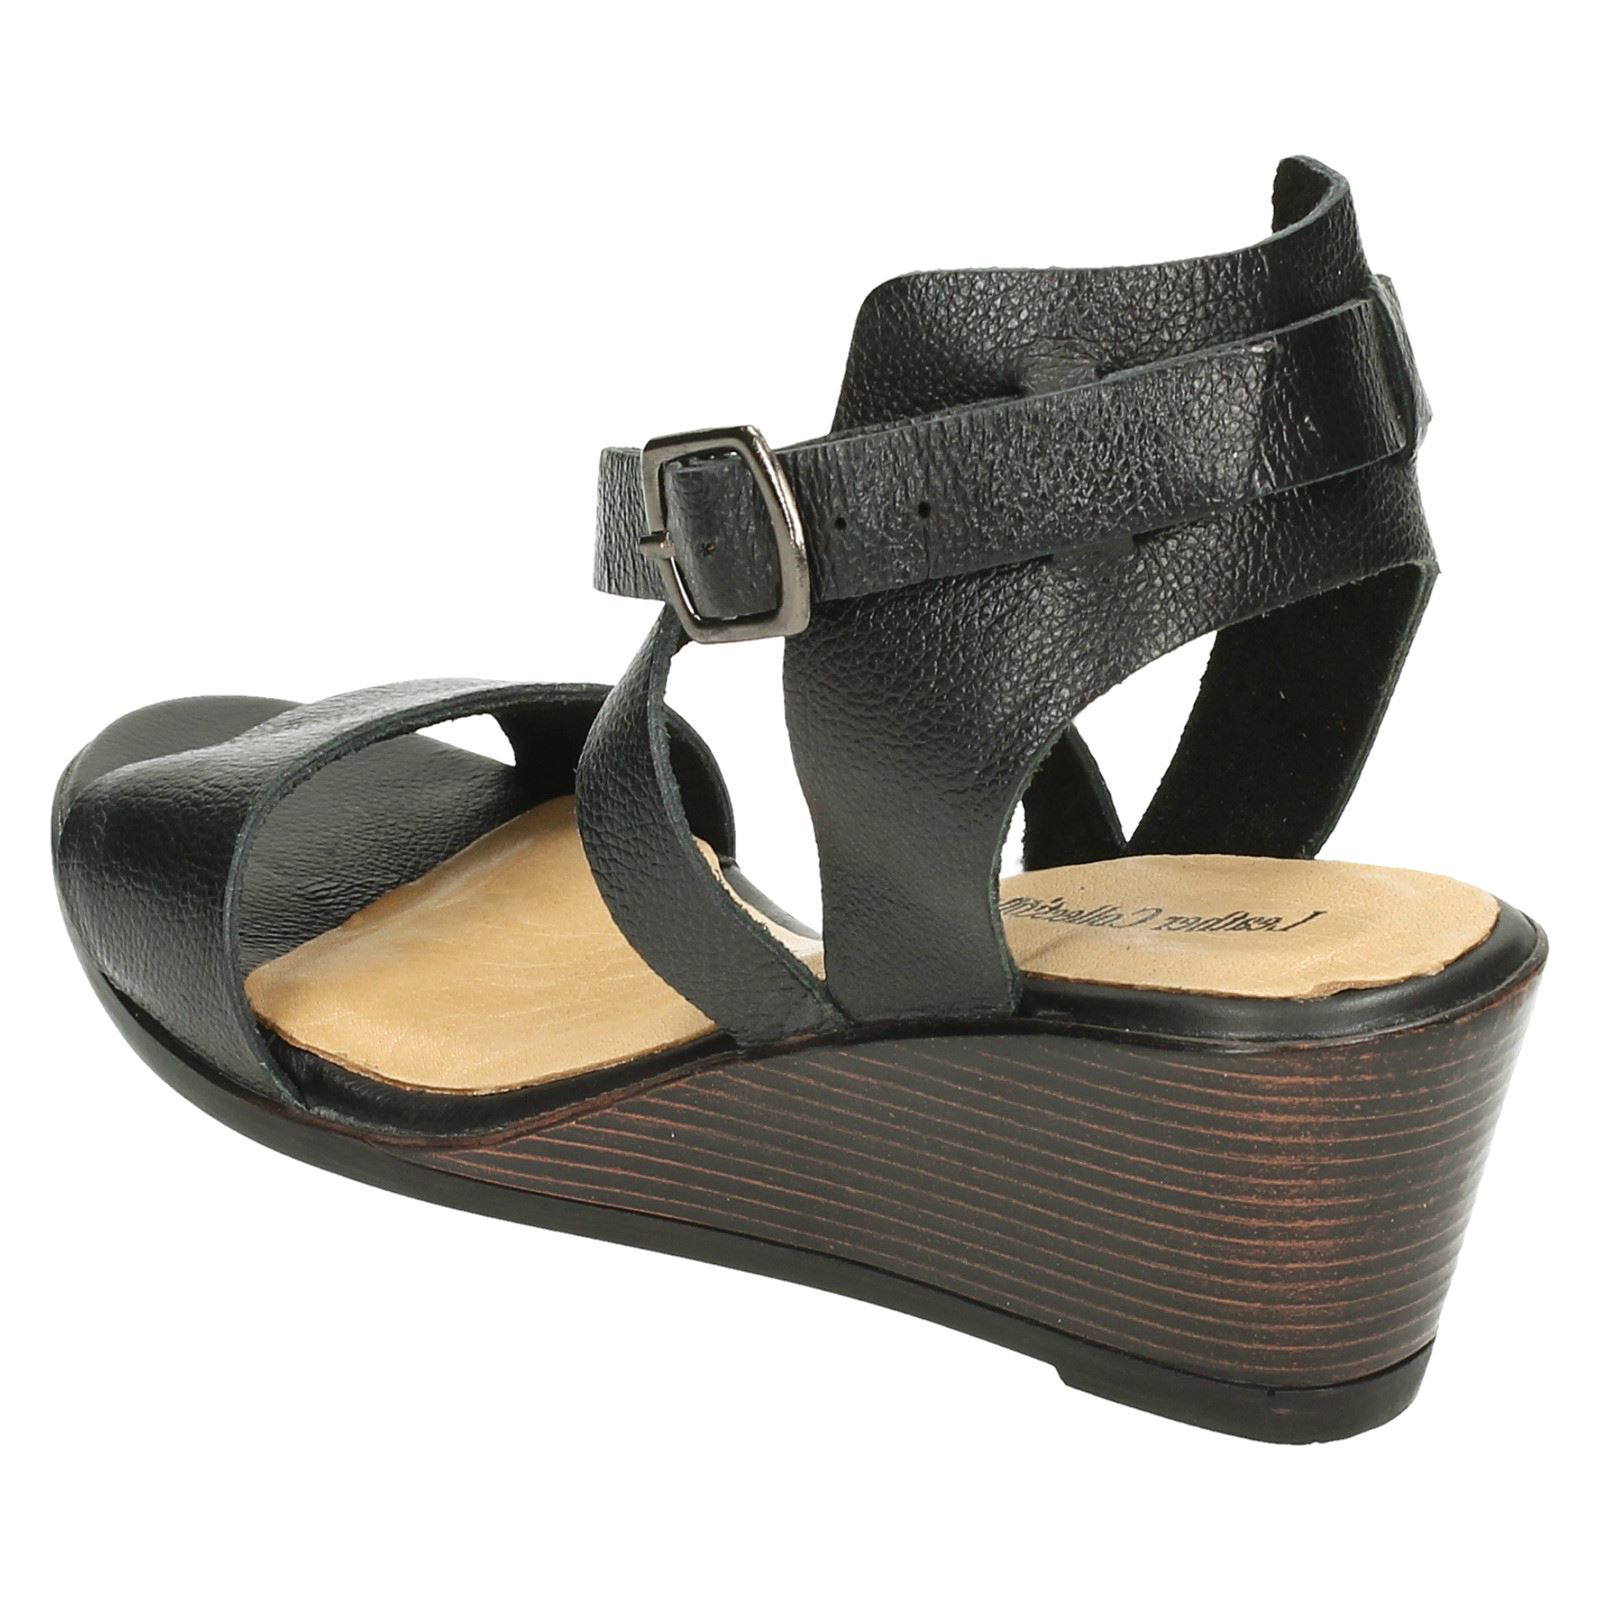 Ladies Leather Collection Open Toe *Sandals*